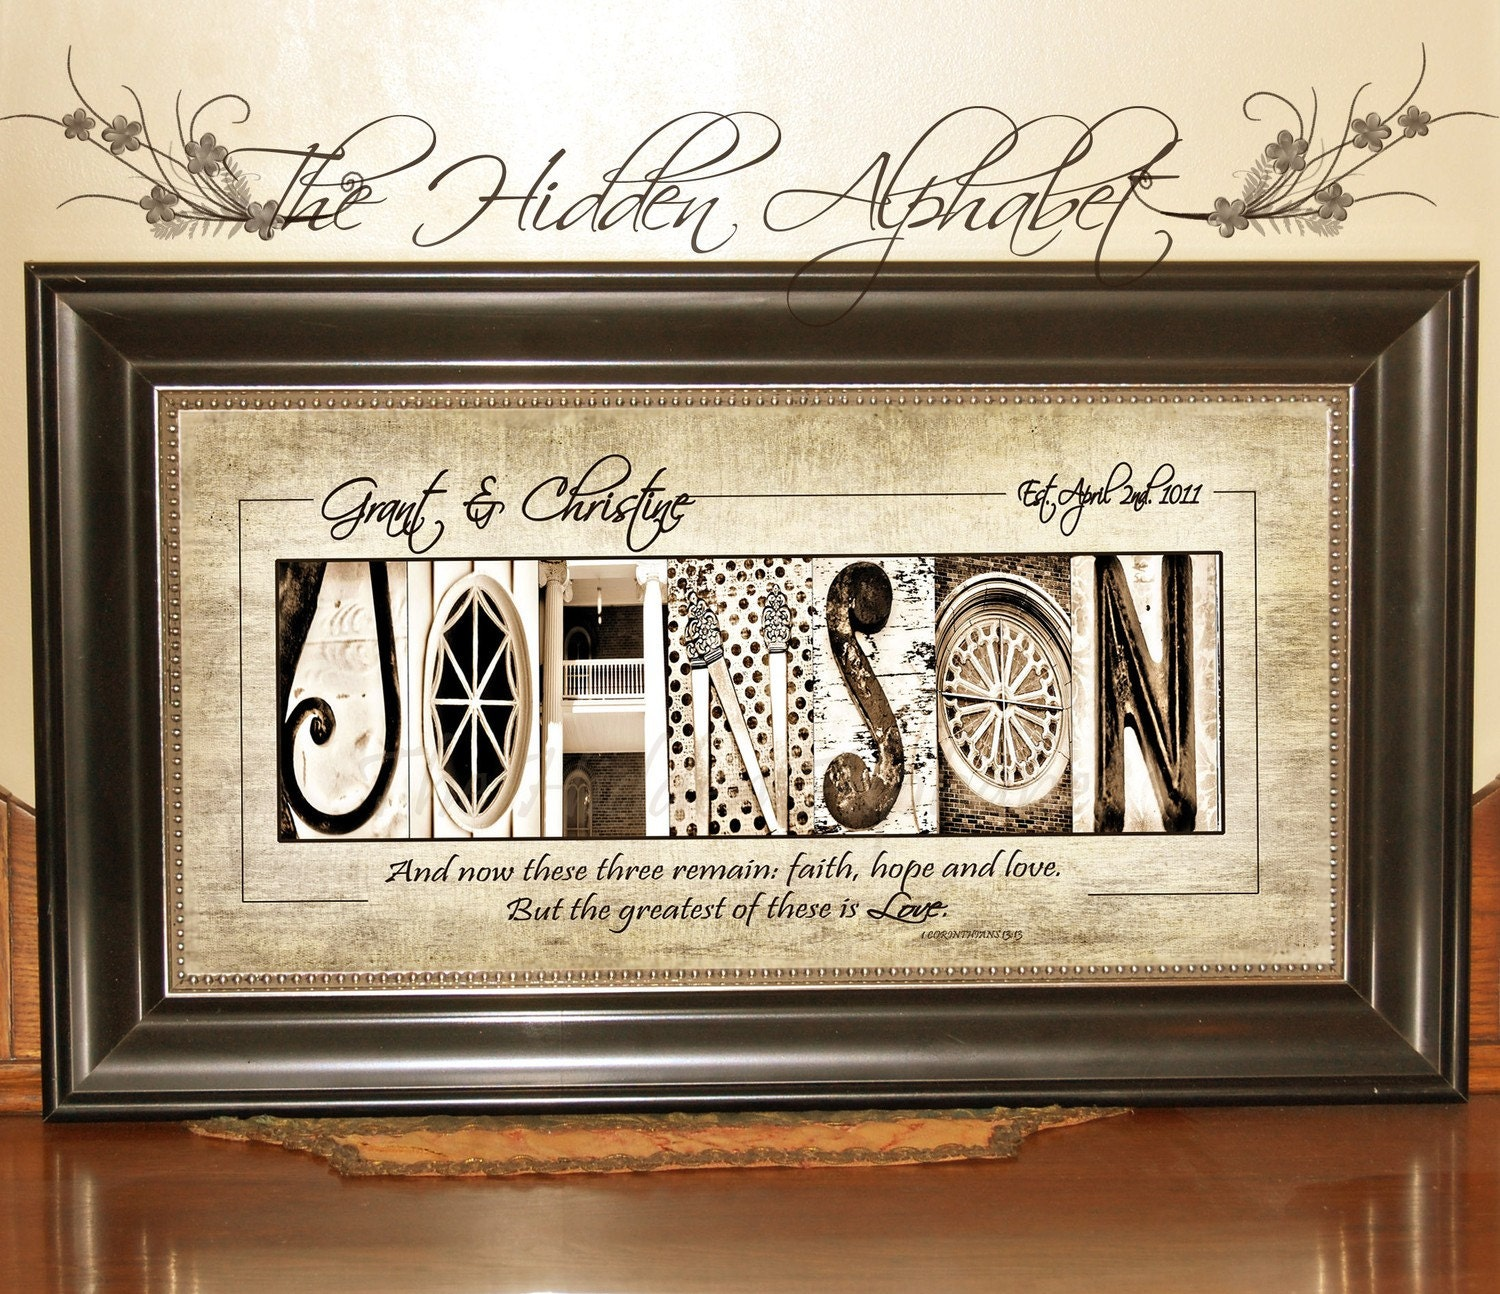 Wedding Gift Alphabet Art : CUSTOM WEDDING Gift Alphabet Photo Art Personalized Name Print 10x20 ...